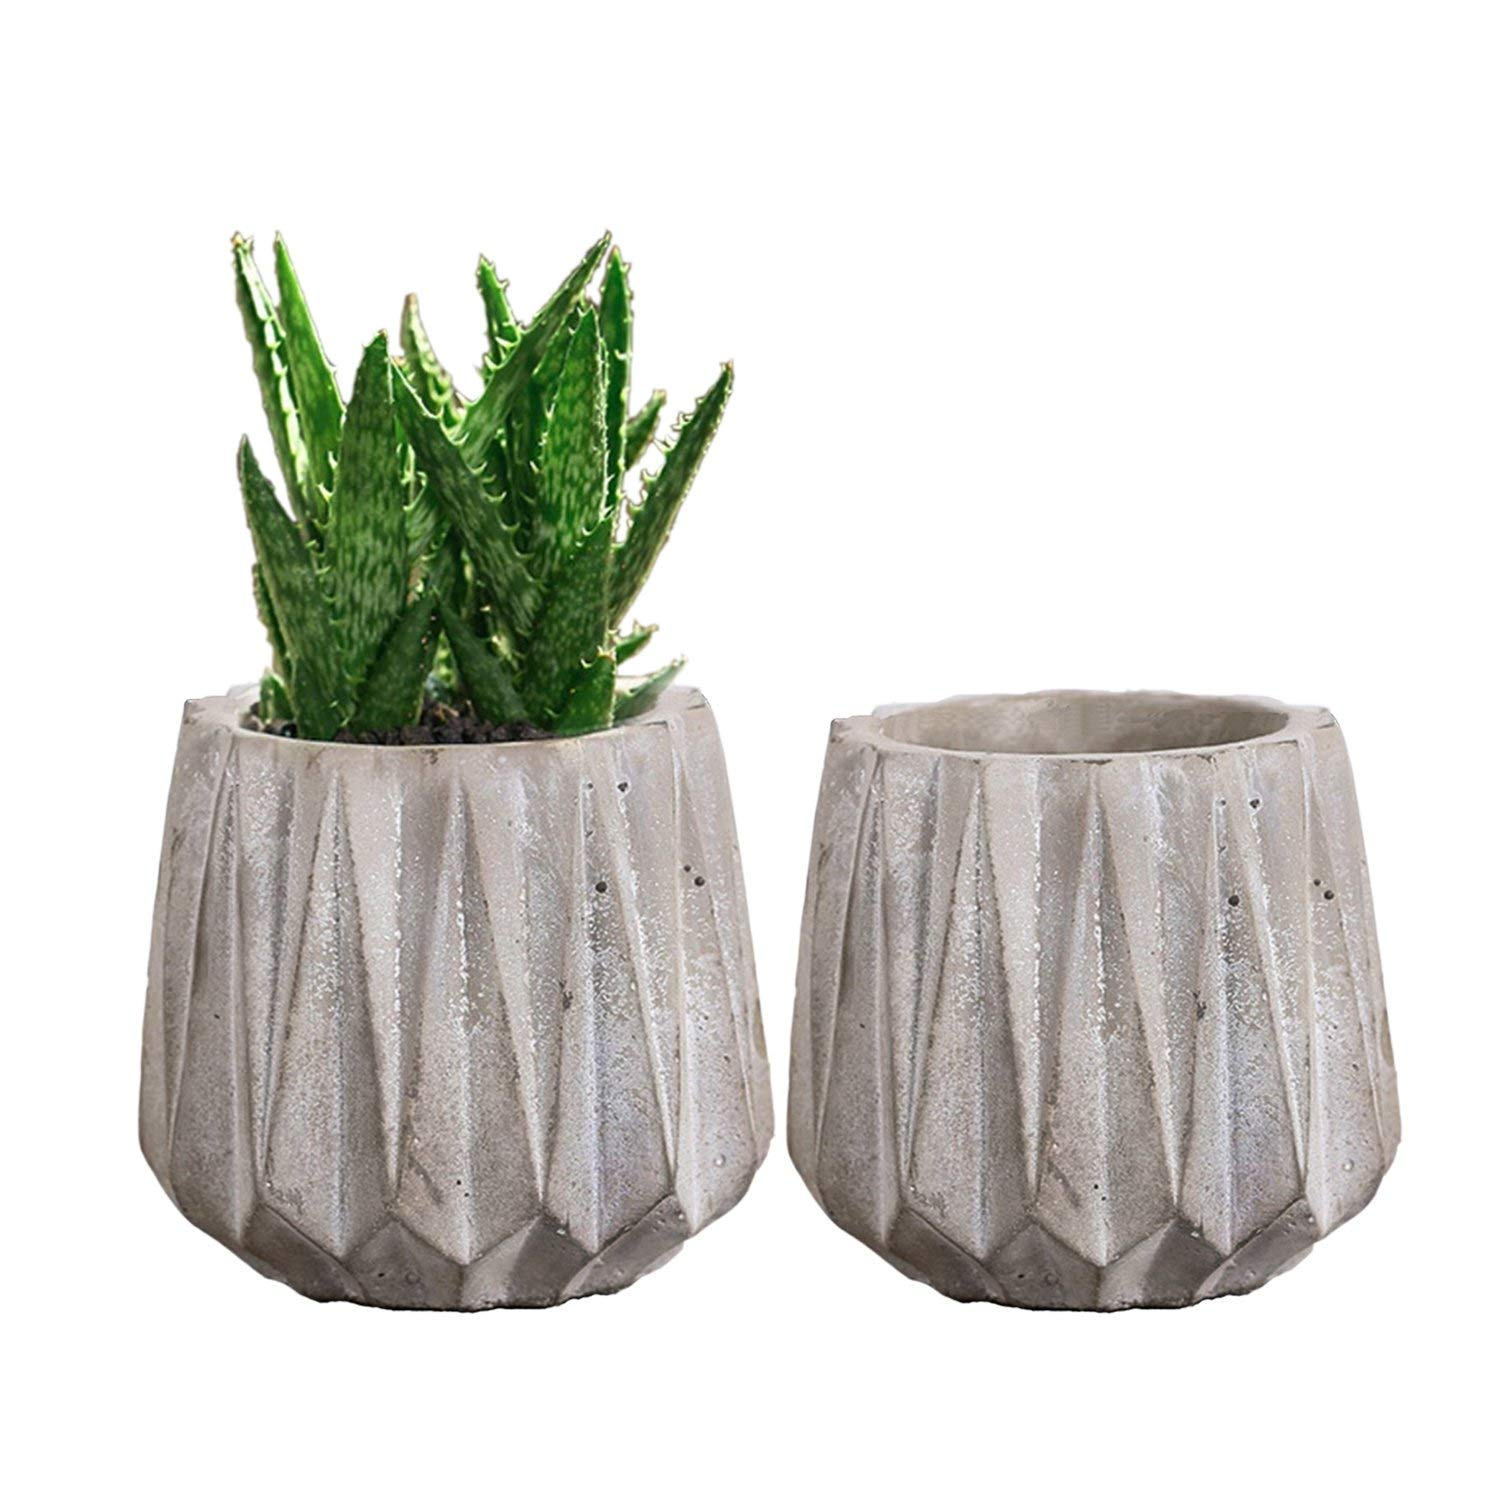 Cement Succulent Planters Pots 3.5'', Cactus Pots Container Window Boxes with Drainage Grey for Home Office Decor Set of 2